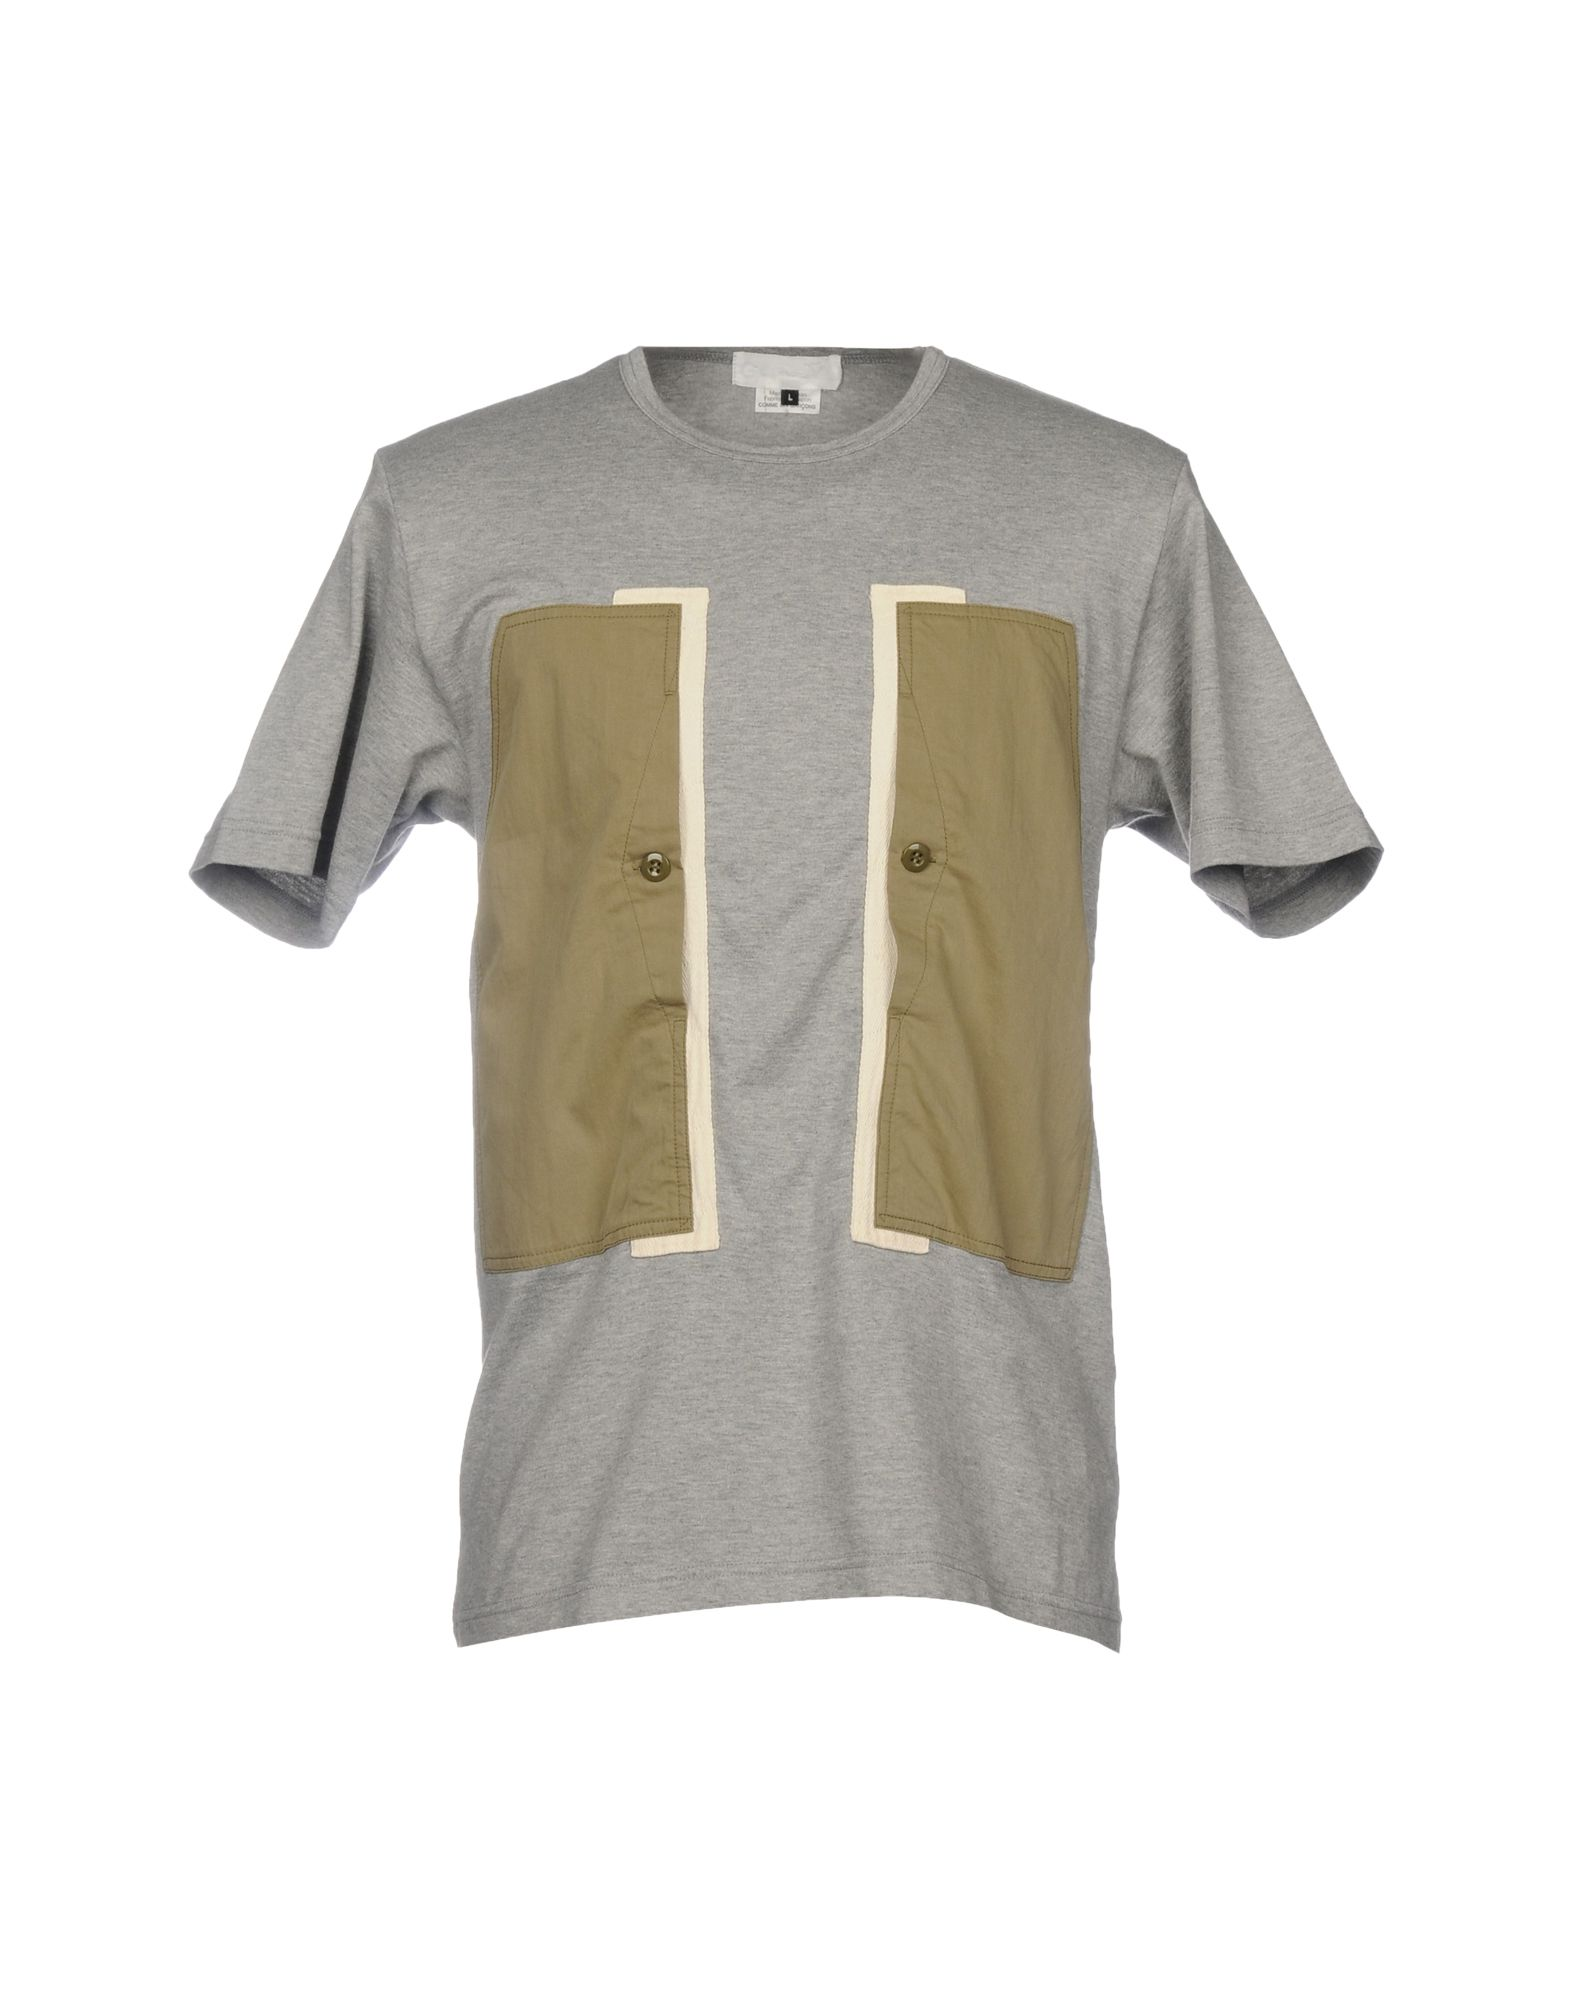 GANRYU T-Shirt in Grey